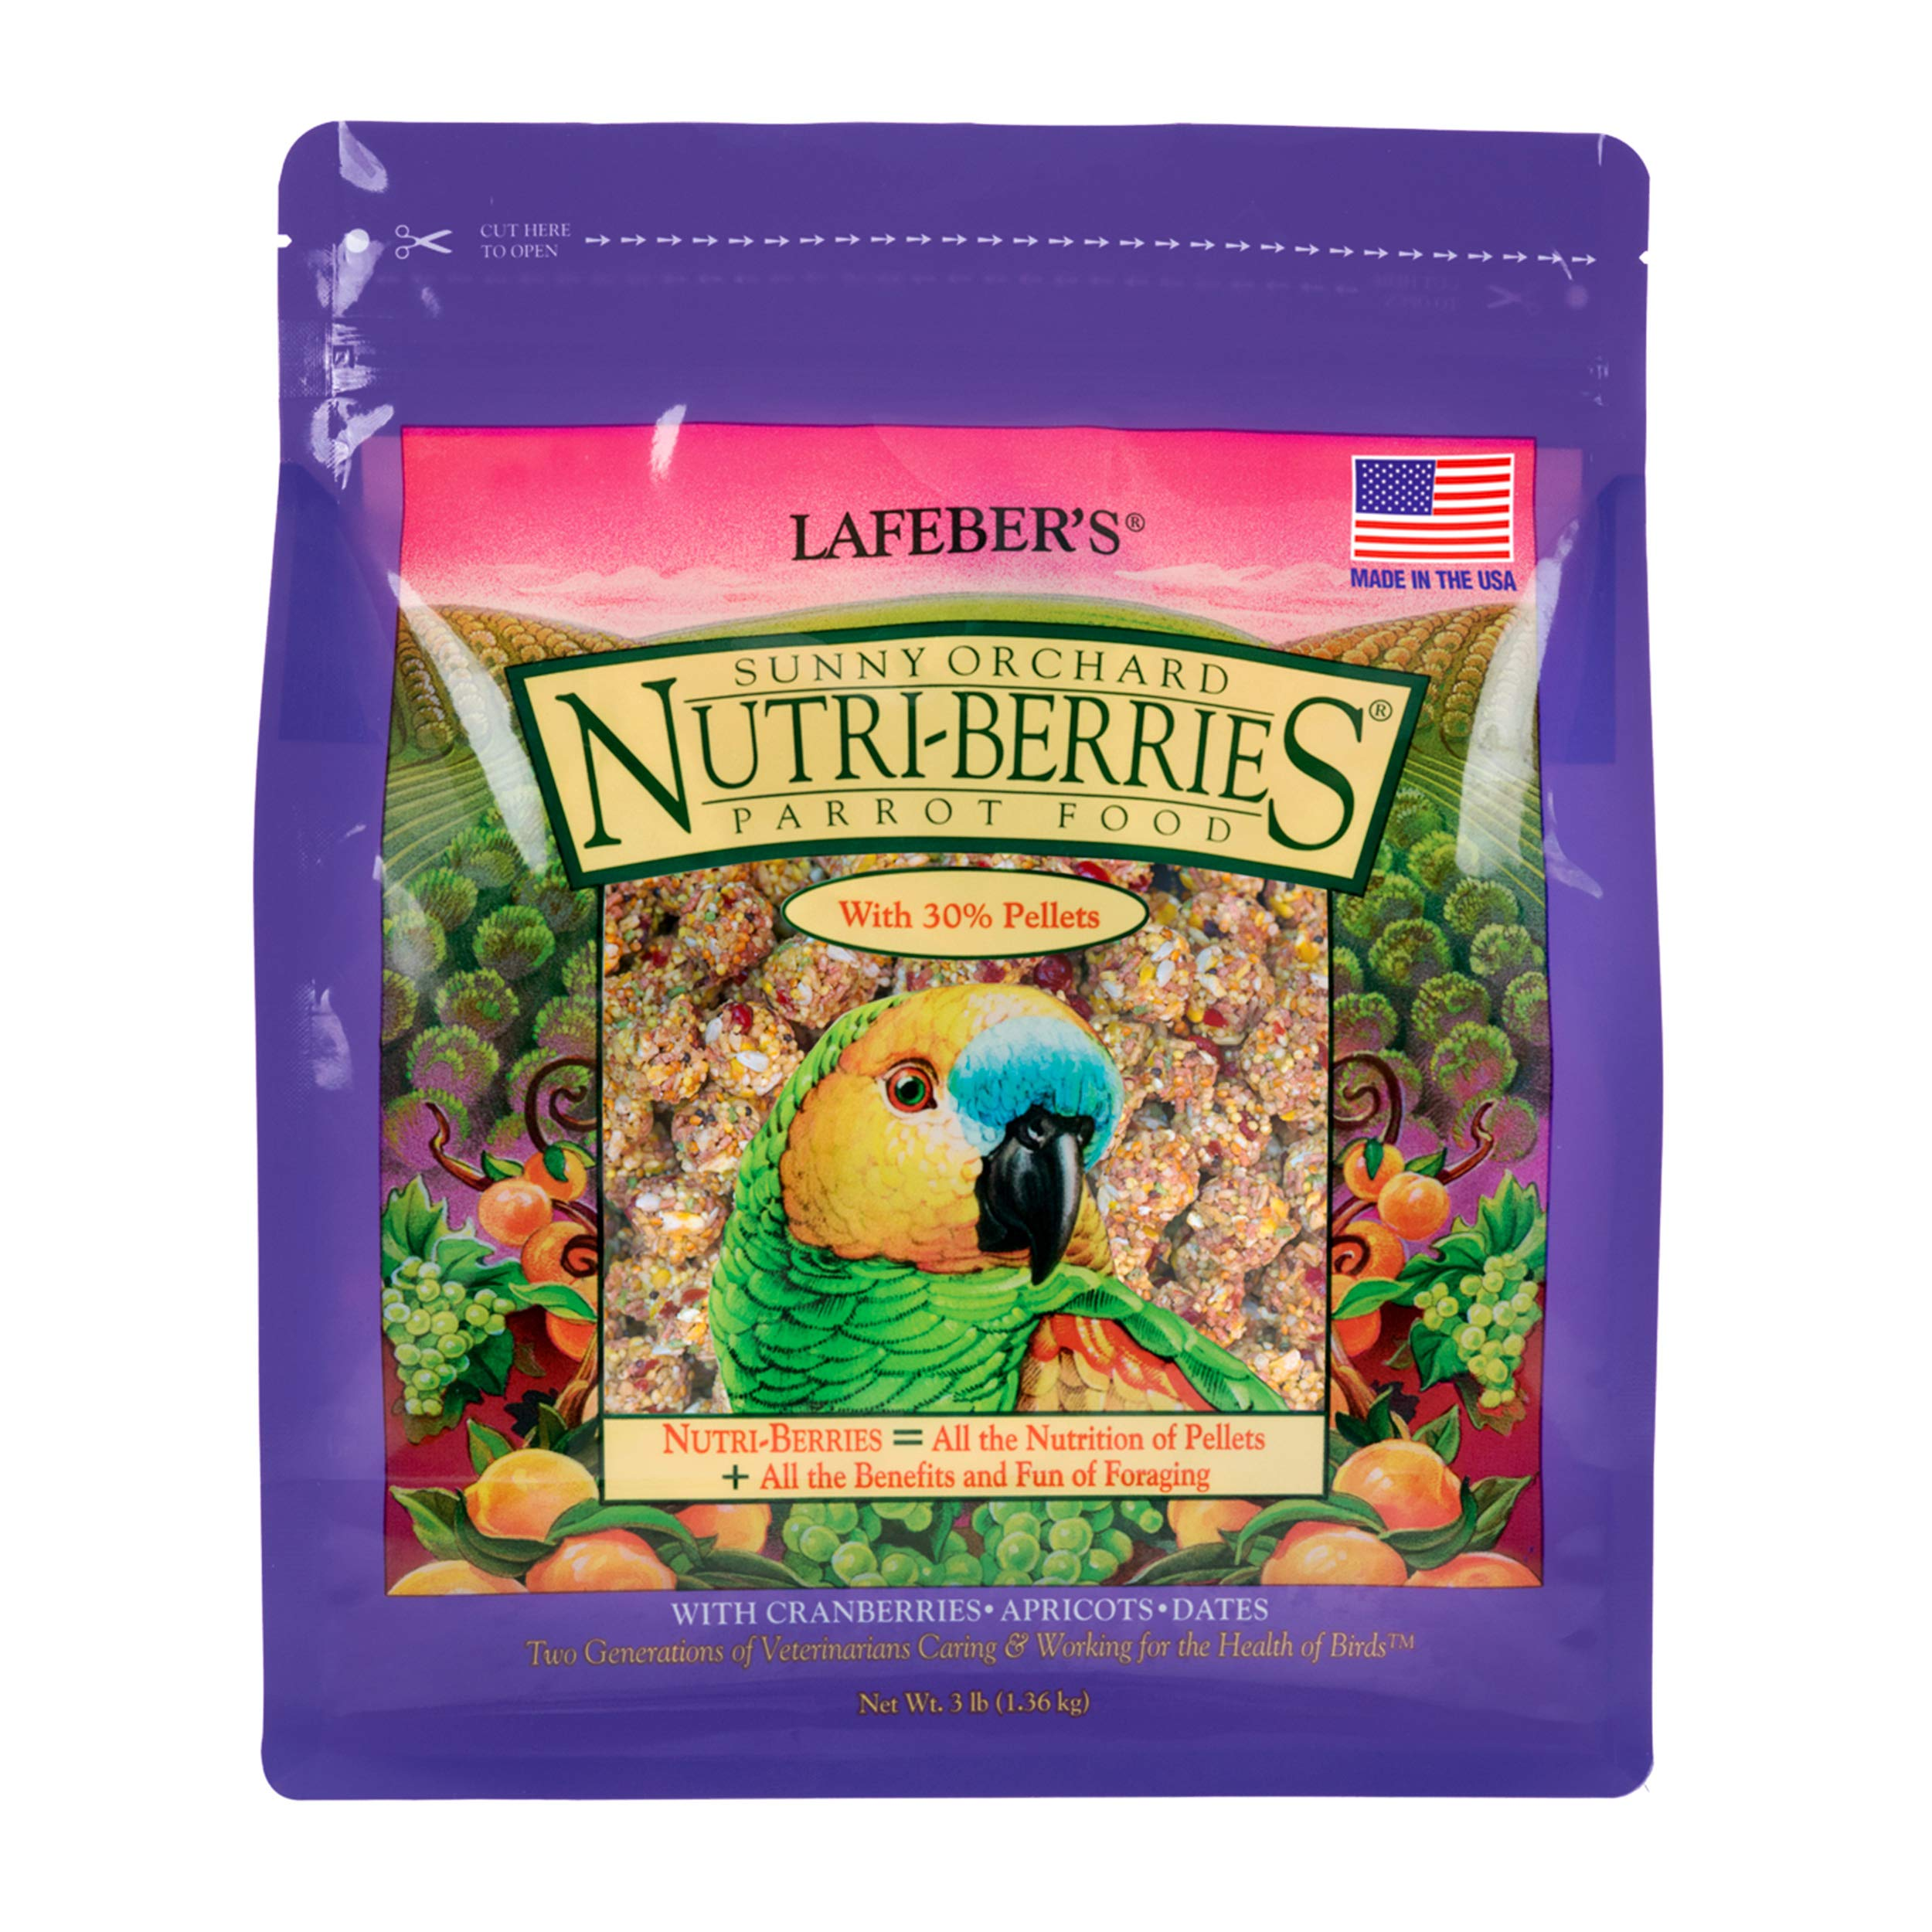 LAFEBER'S Sunny Orchard Nutri-Berries Pet Bird Food, Made with Non-GMO and Human-Grade Ingredients, for Parrots 3 lbs by LAFEBER'S